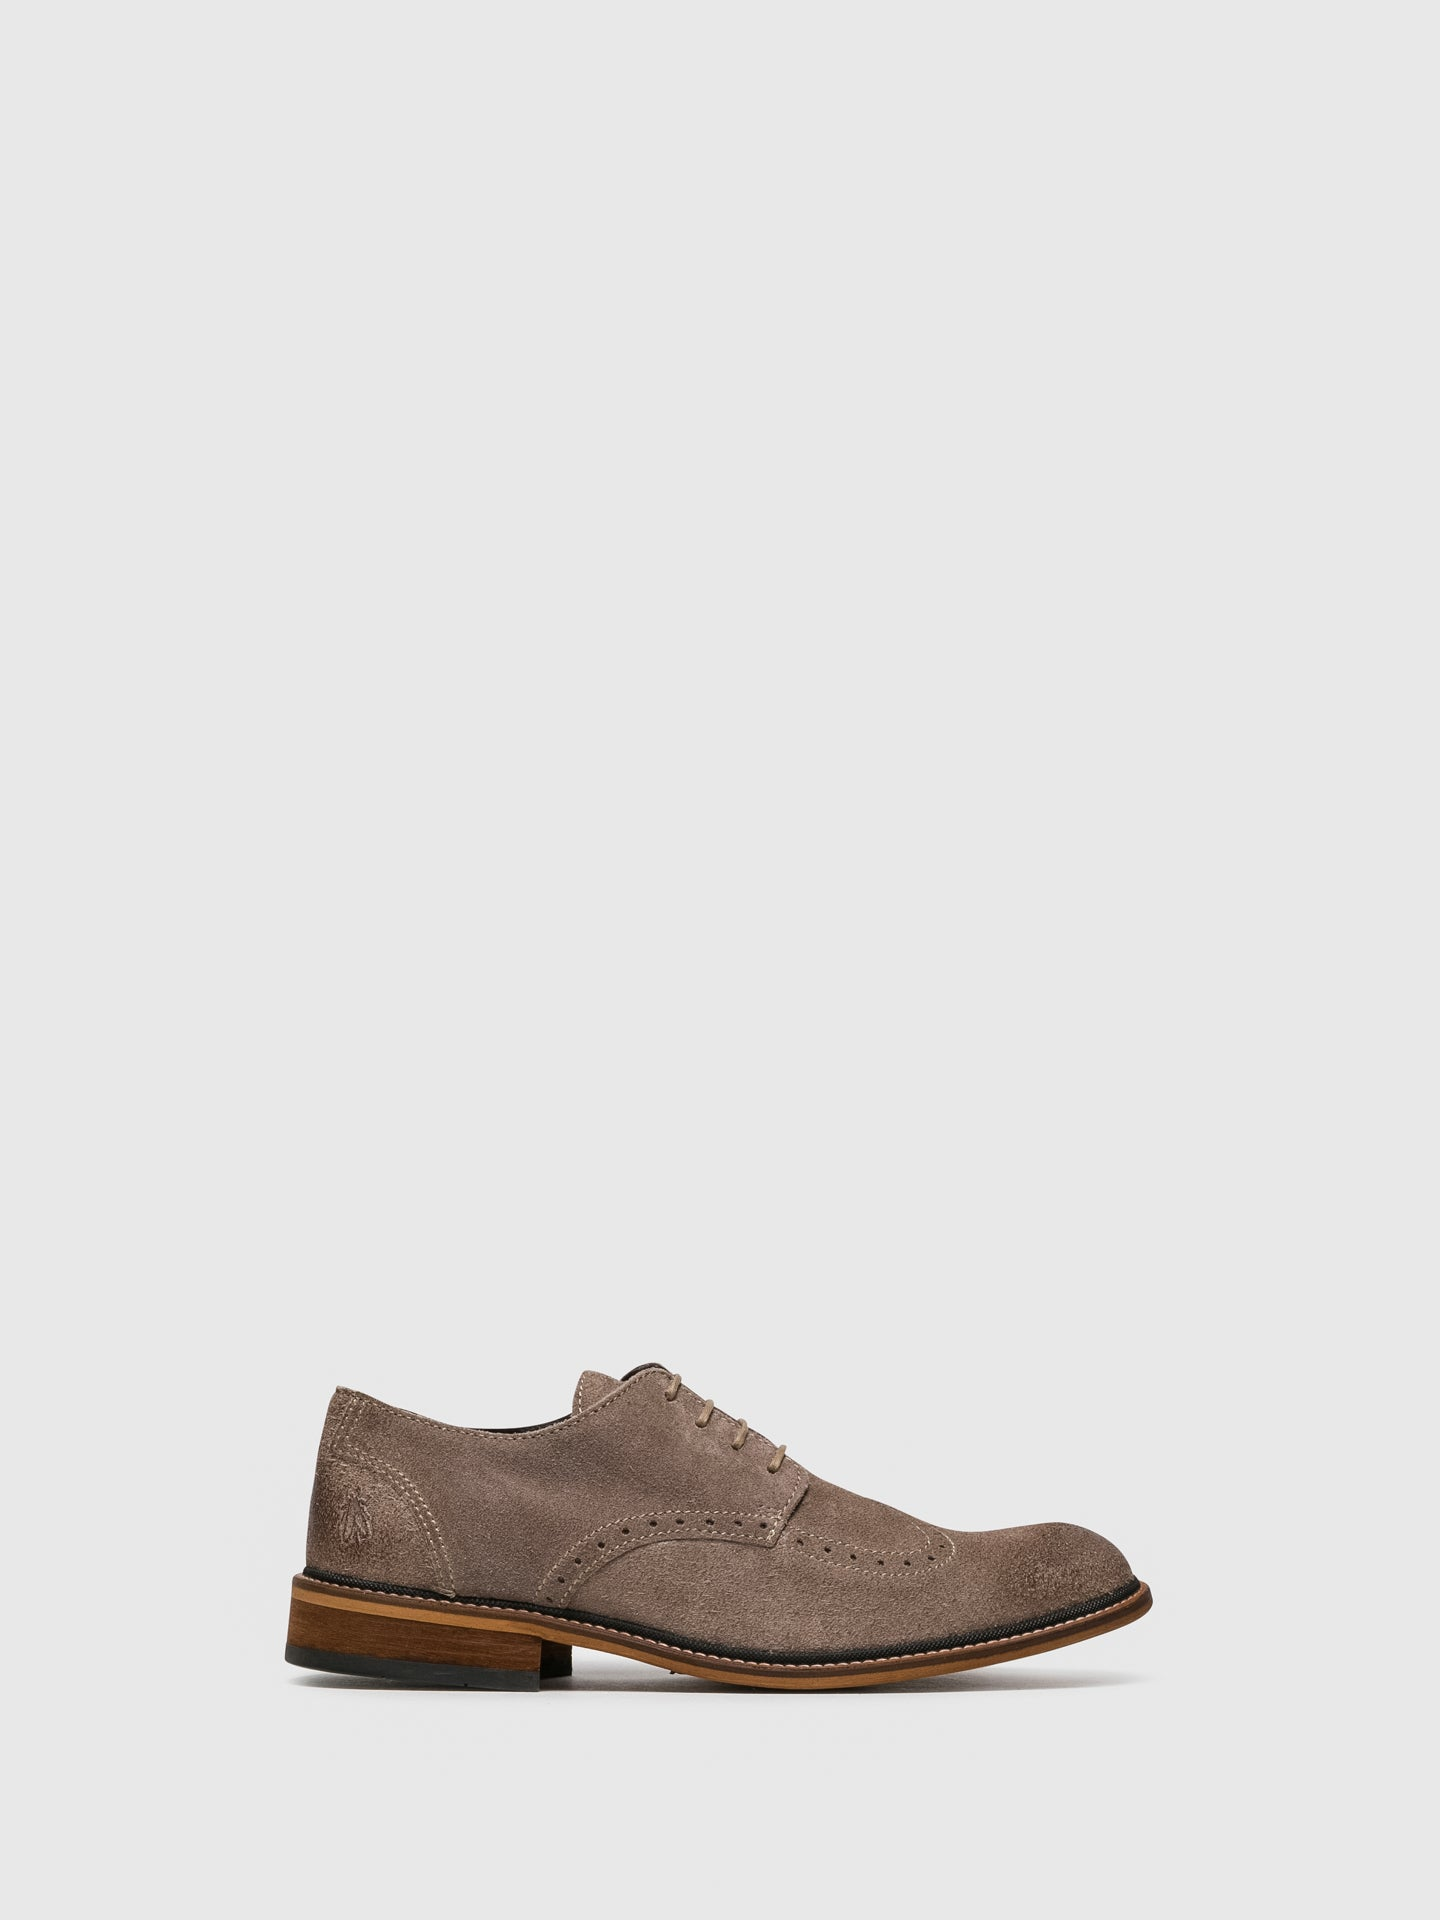 Fly London Schuhe im Derby-Stil in Taupe